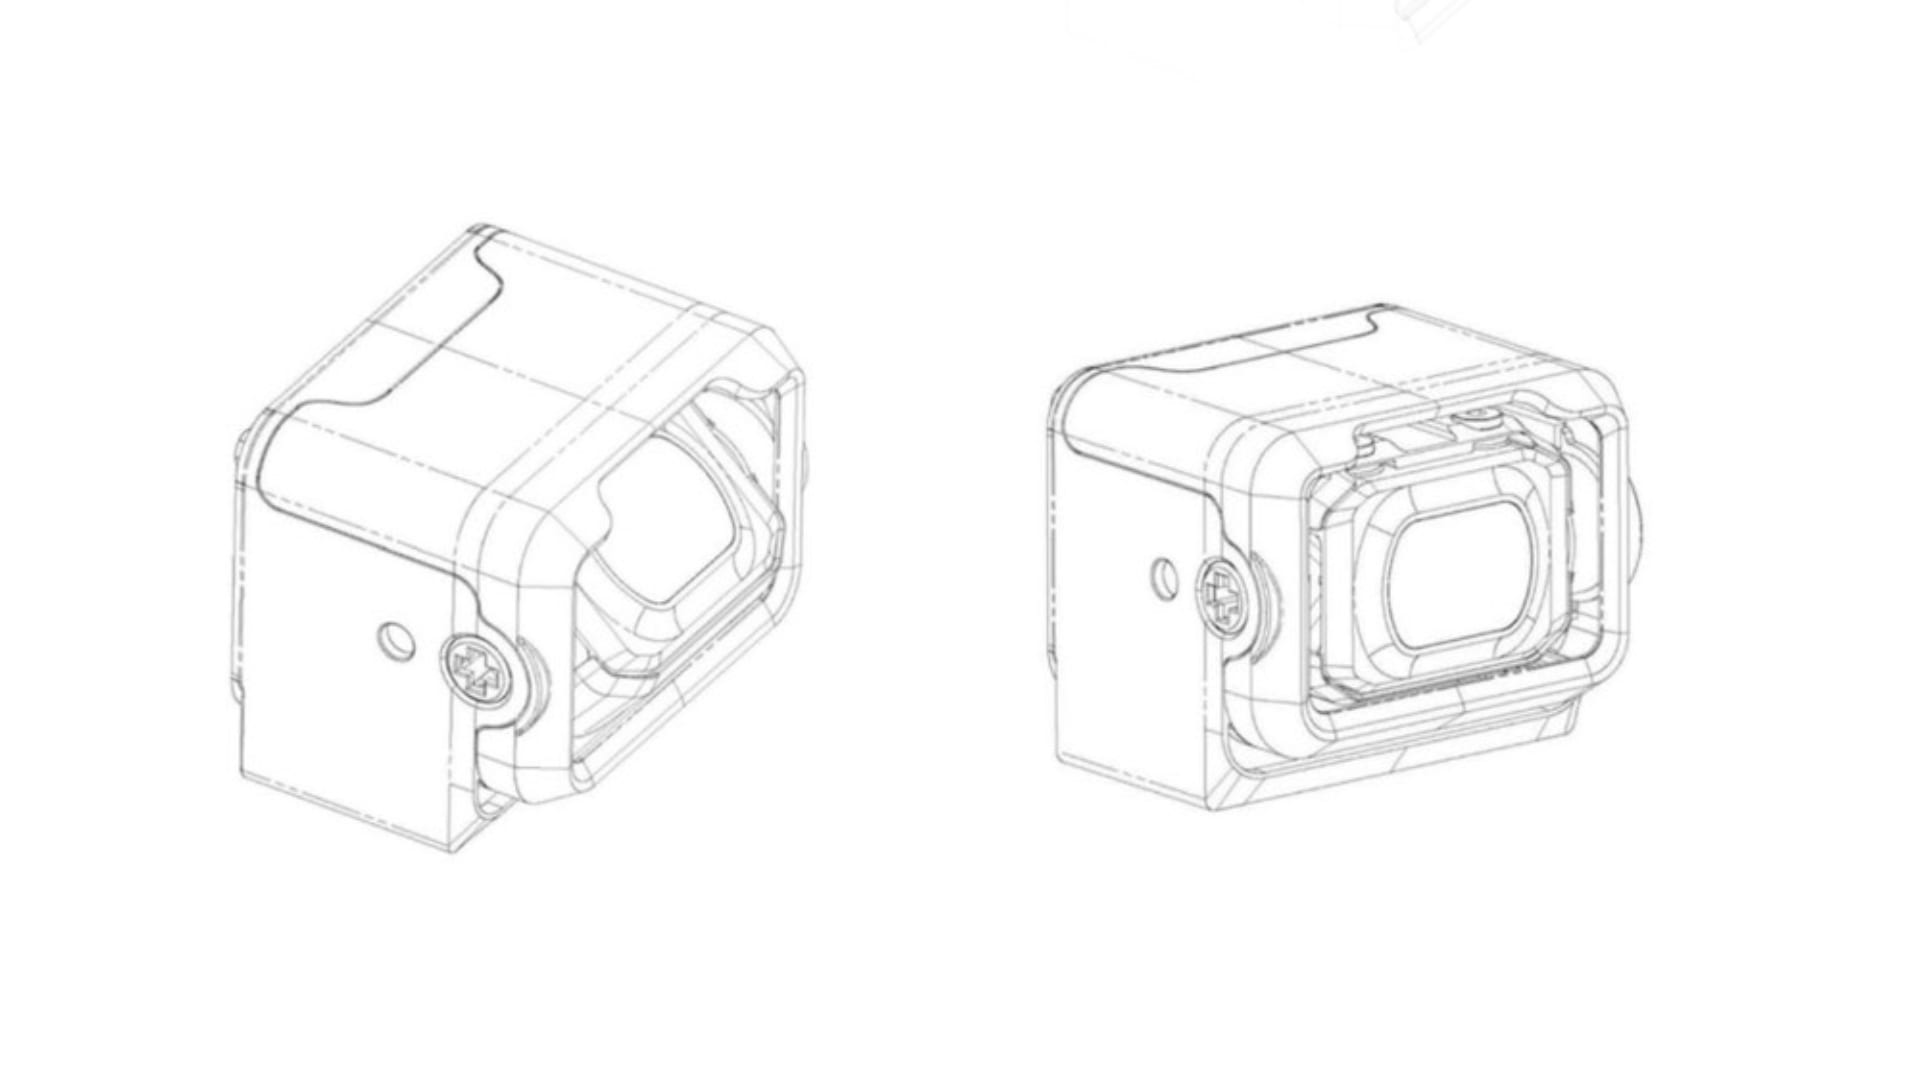 DJI patent shows new FPV camera. Will DJI finally release an FPV drone?